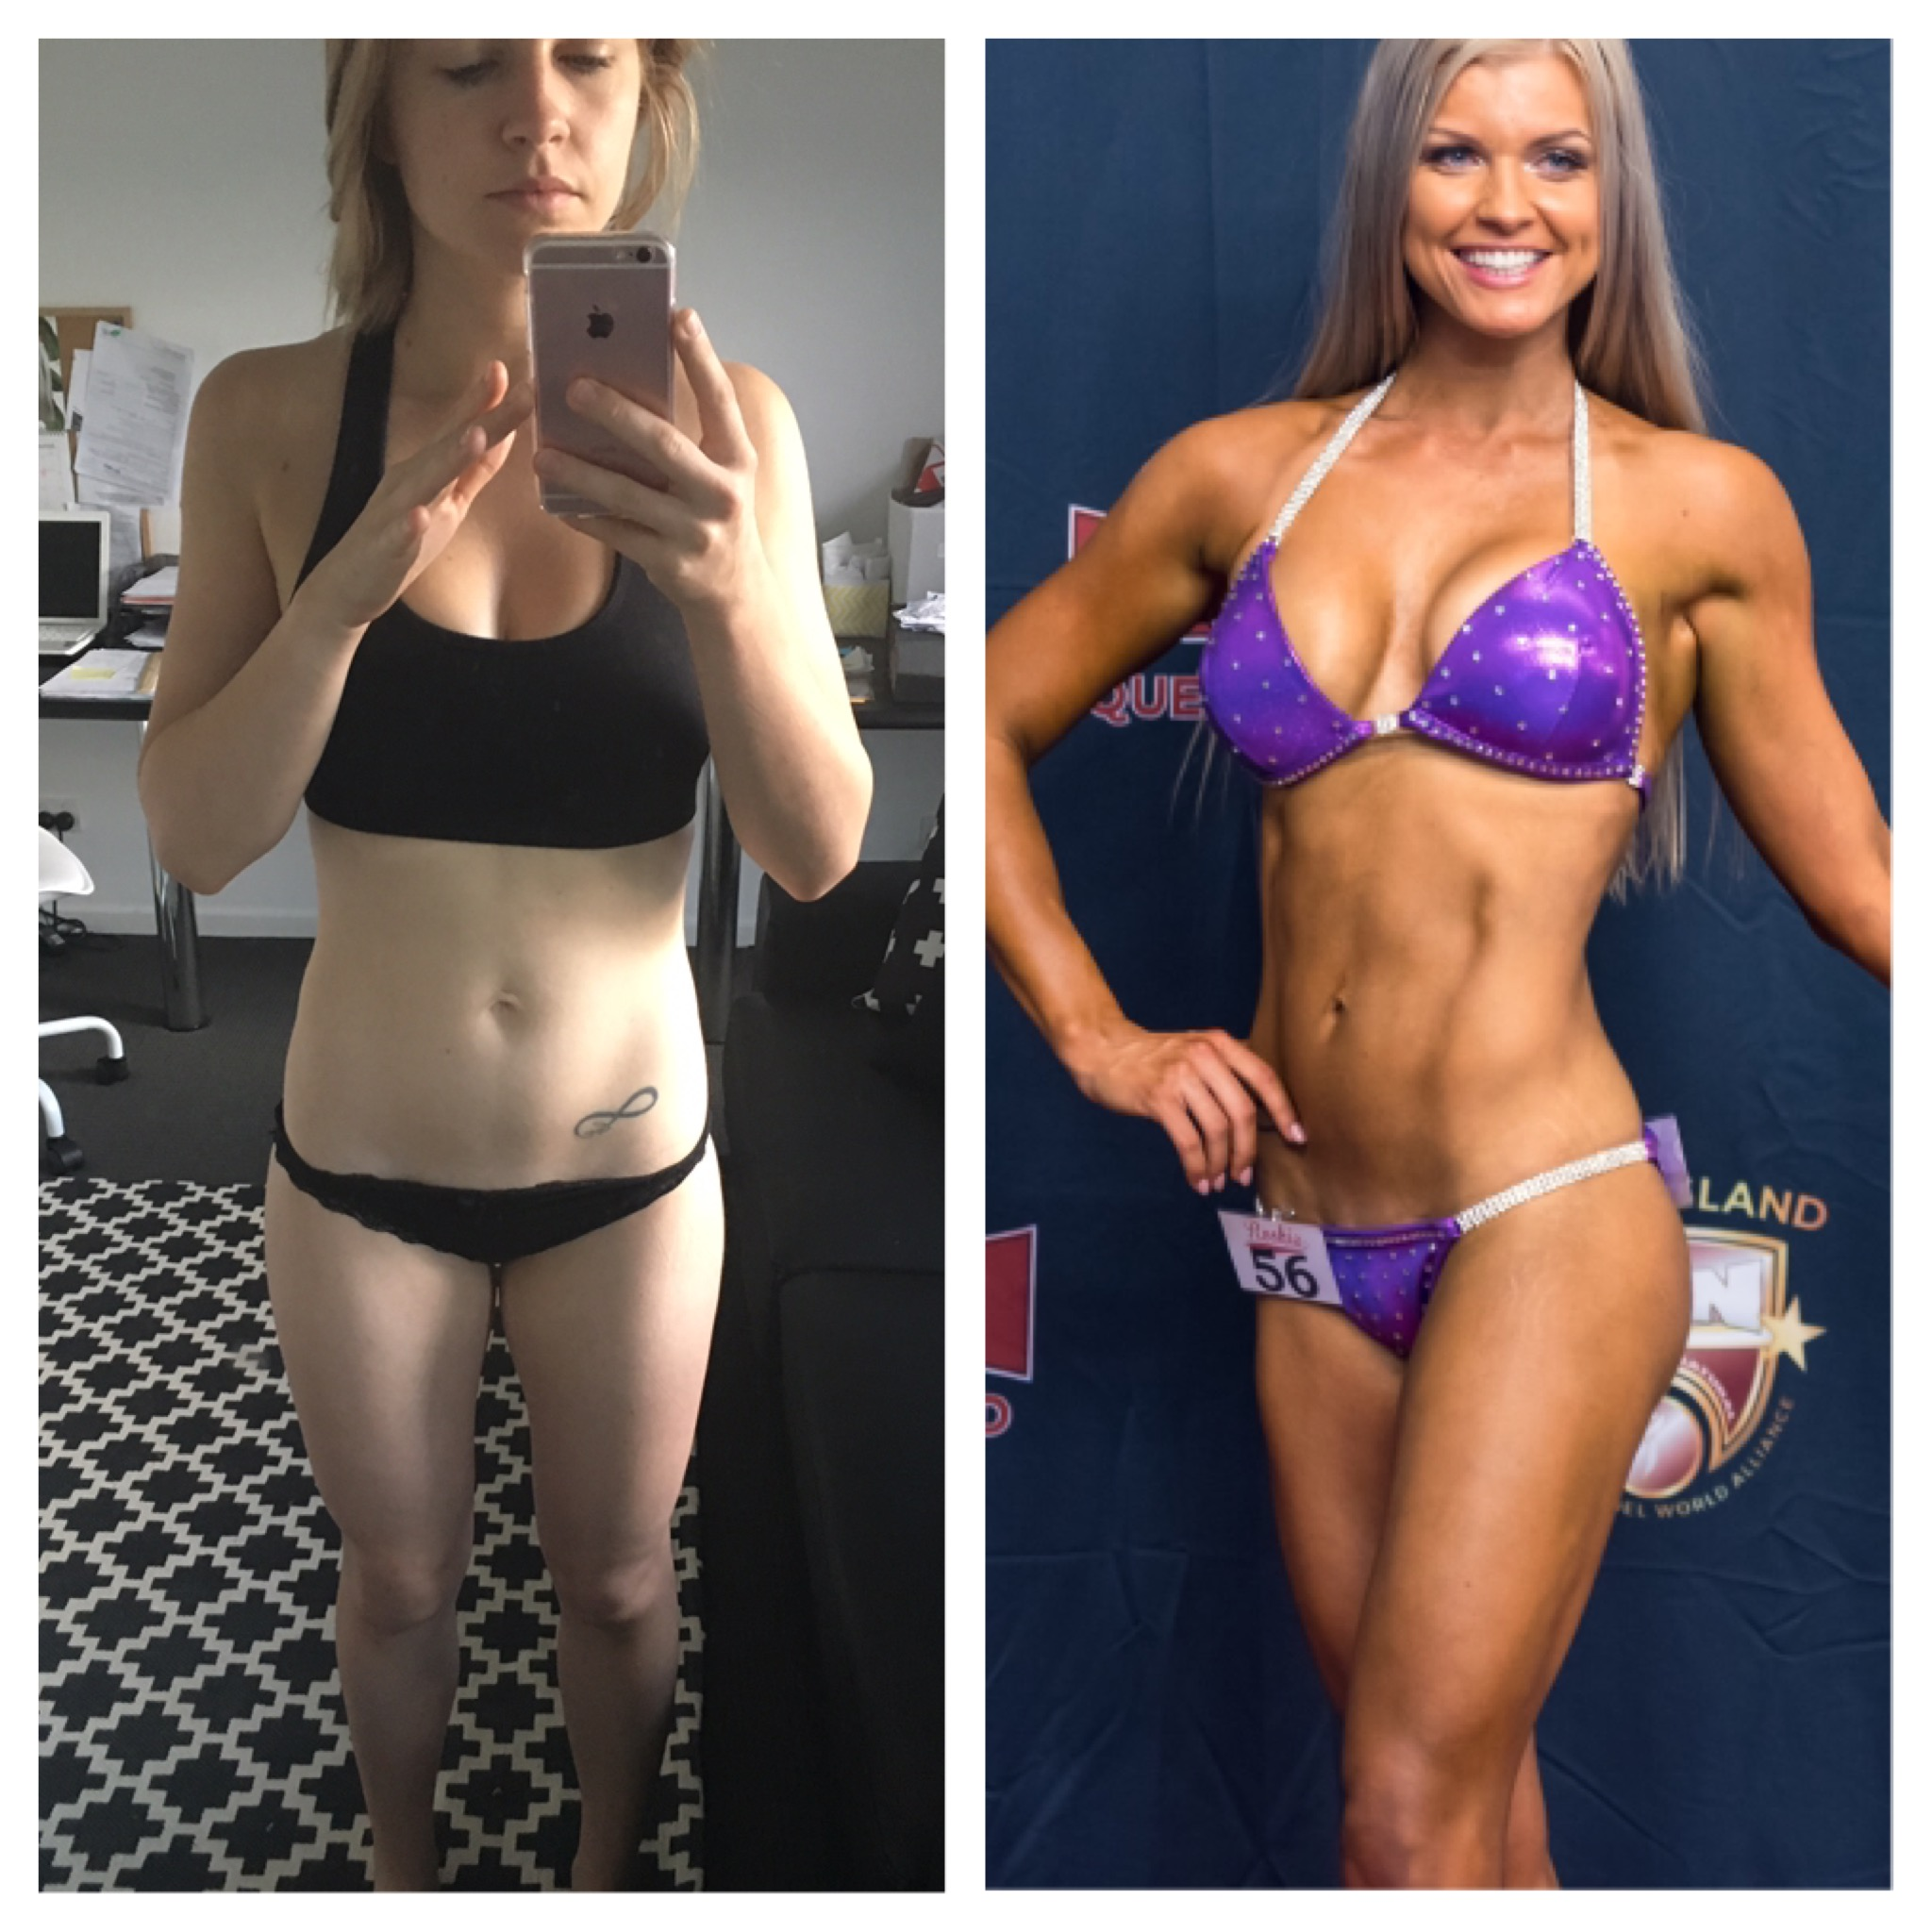 fat loss weight training nutritional coaching personal trainer transformation 10.JPG